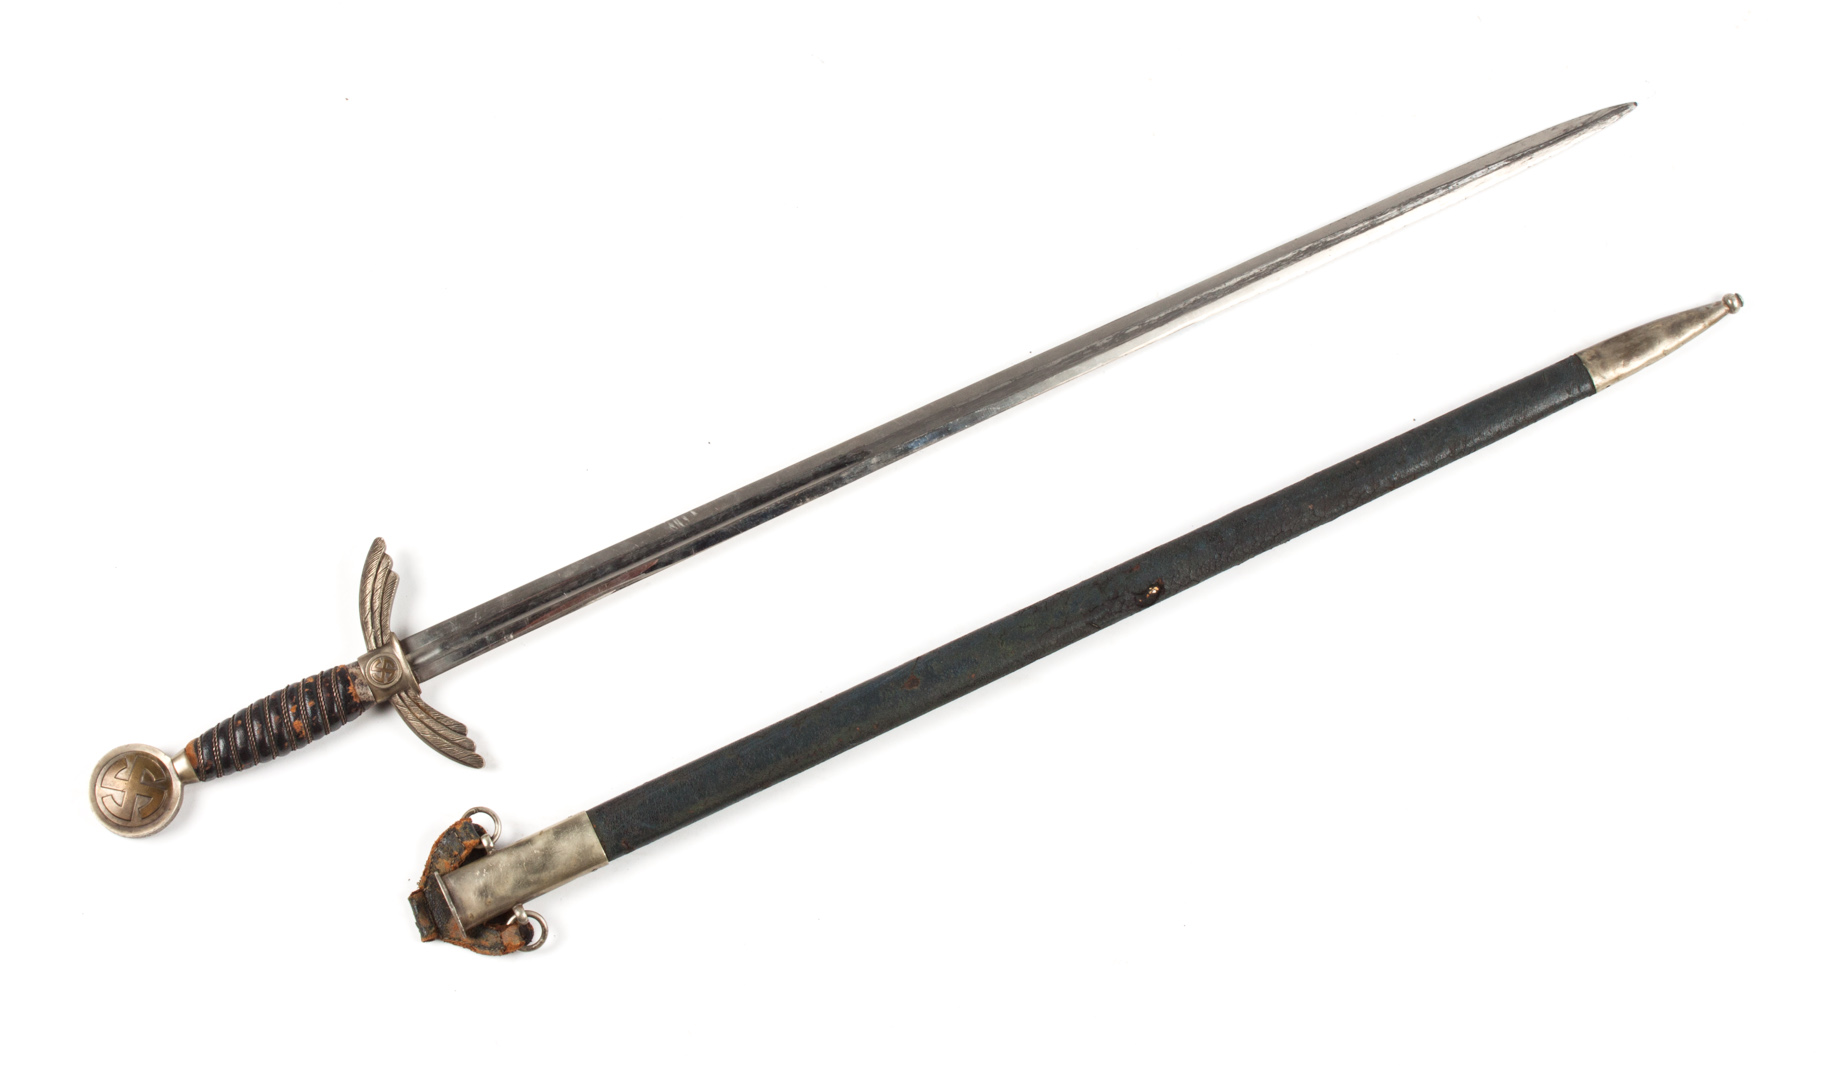 German Luftwaffe officer's sword and scabbard